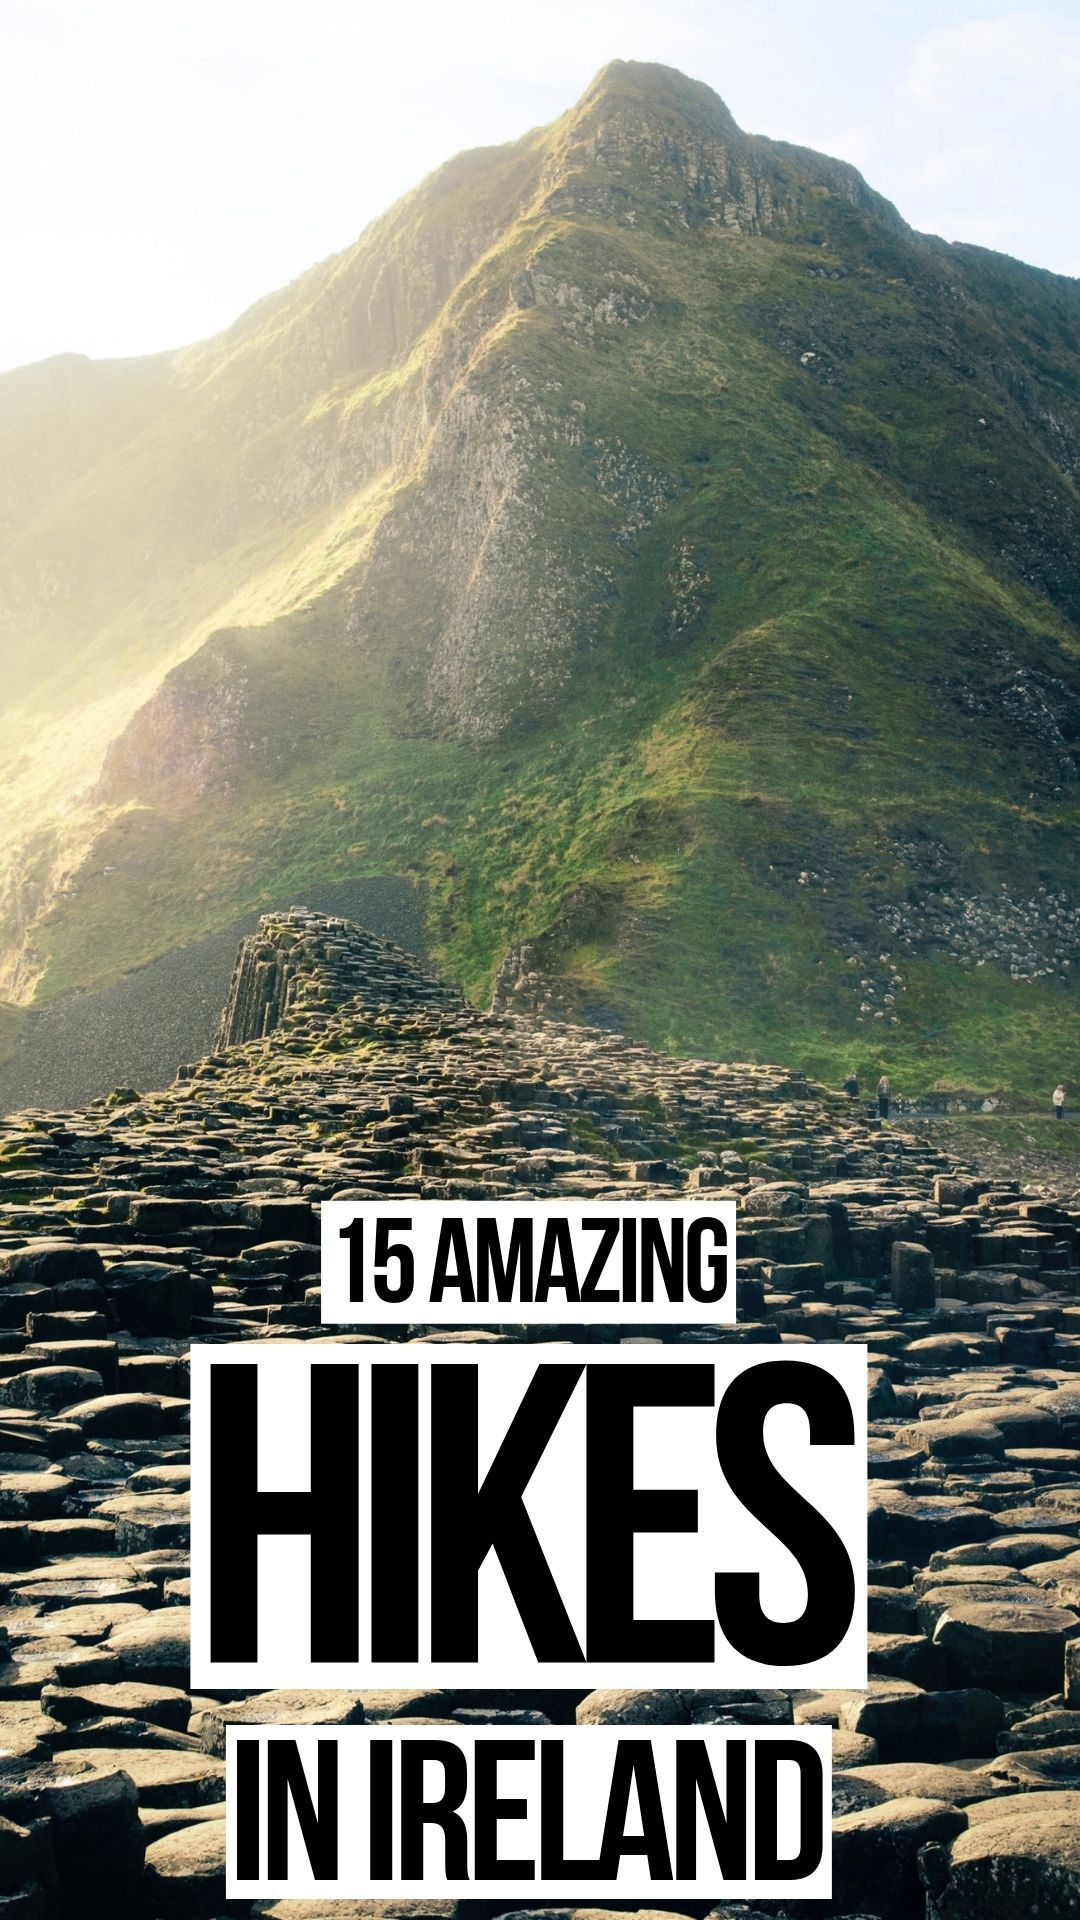 Why Hiking in Ireland is Amazing • The 15 Best Hikes in Ireland